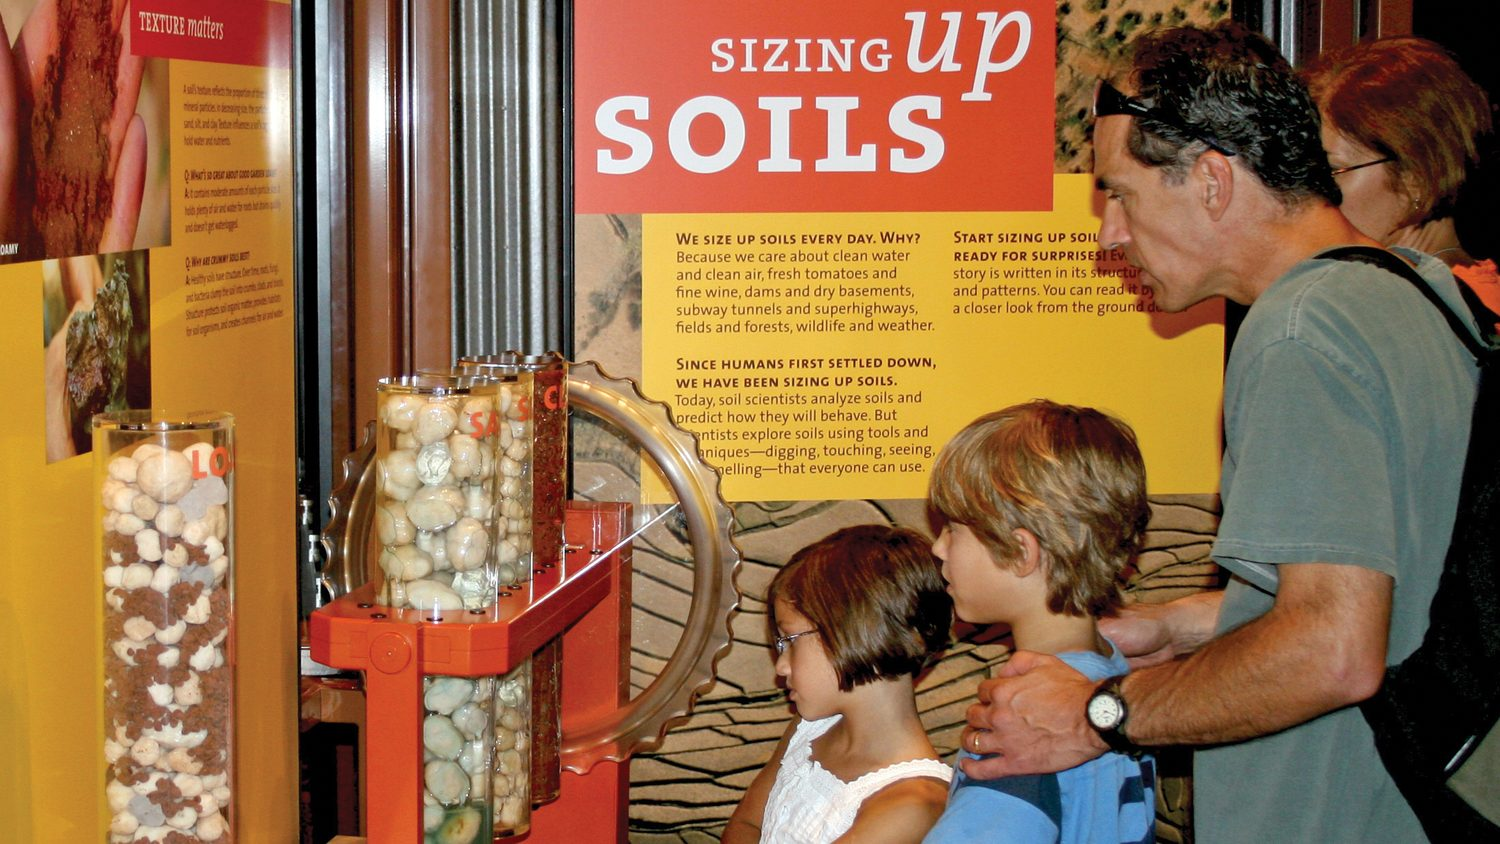 Children learning about soil at a museum